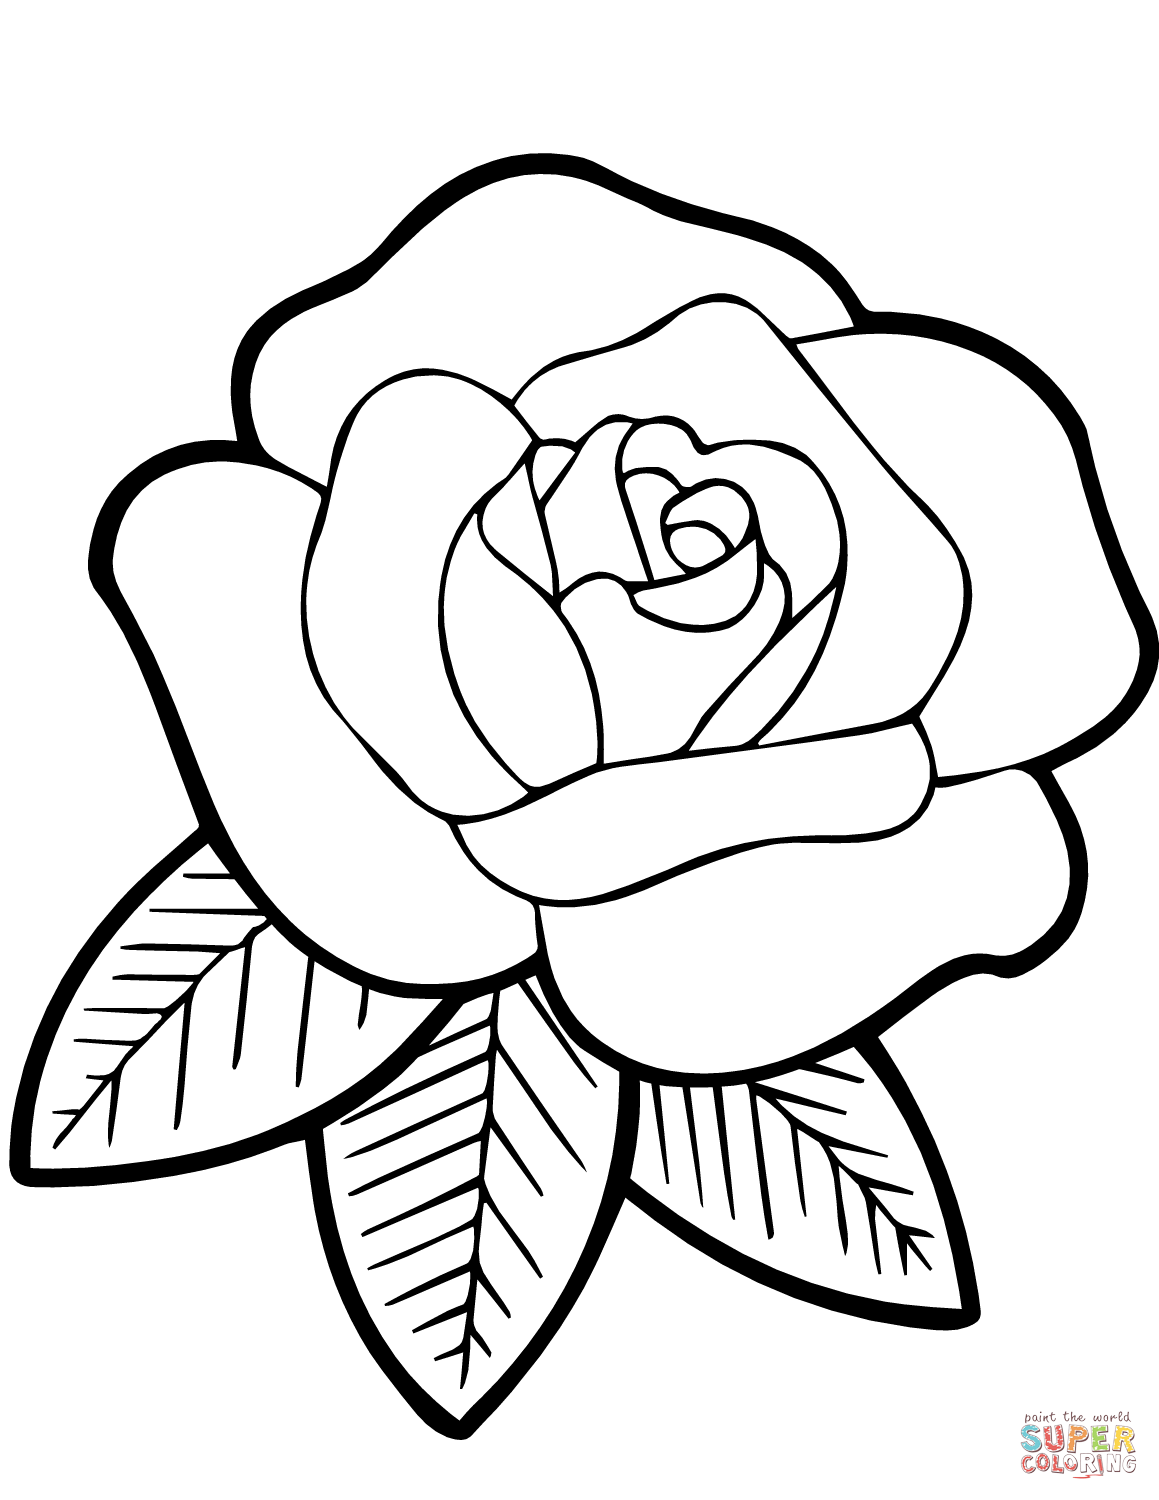 Rose stained glass coloring pages